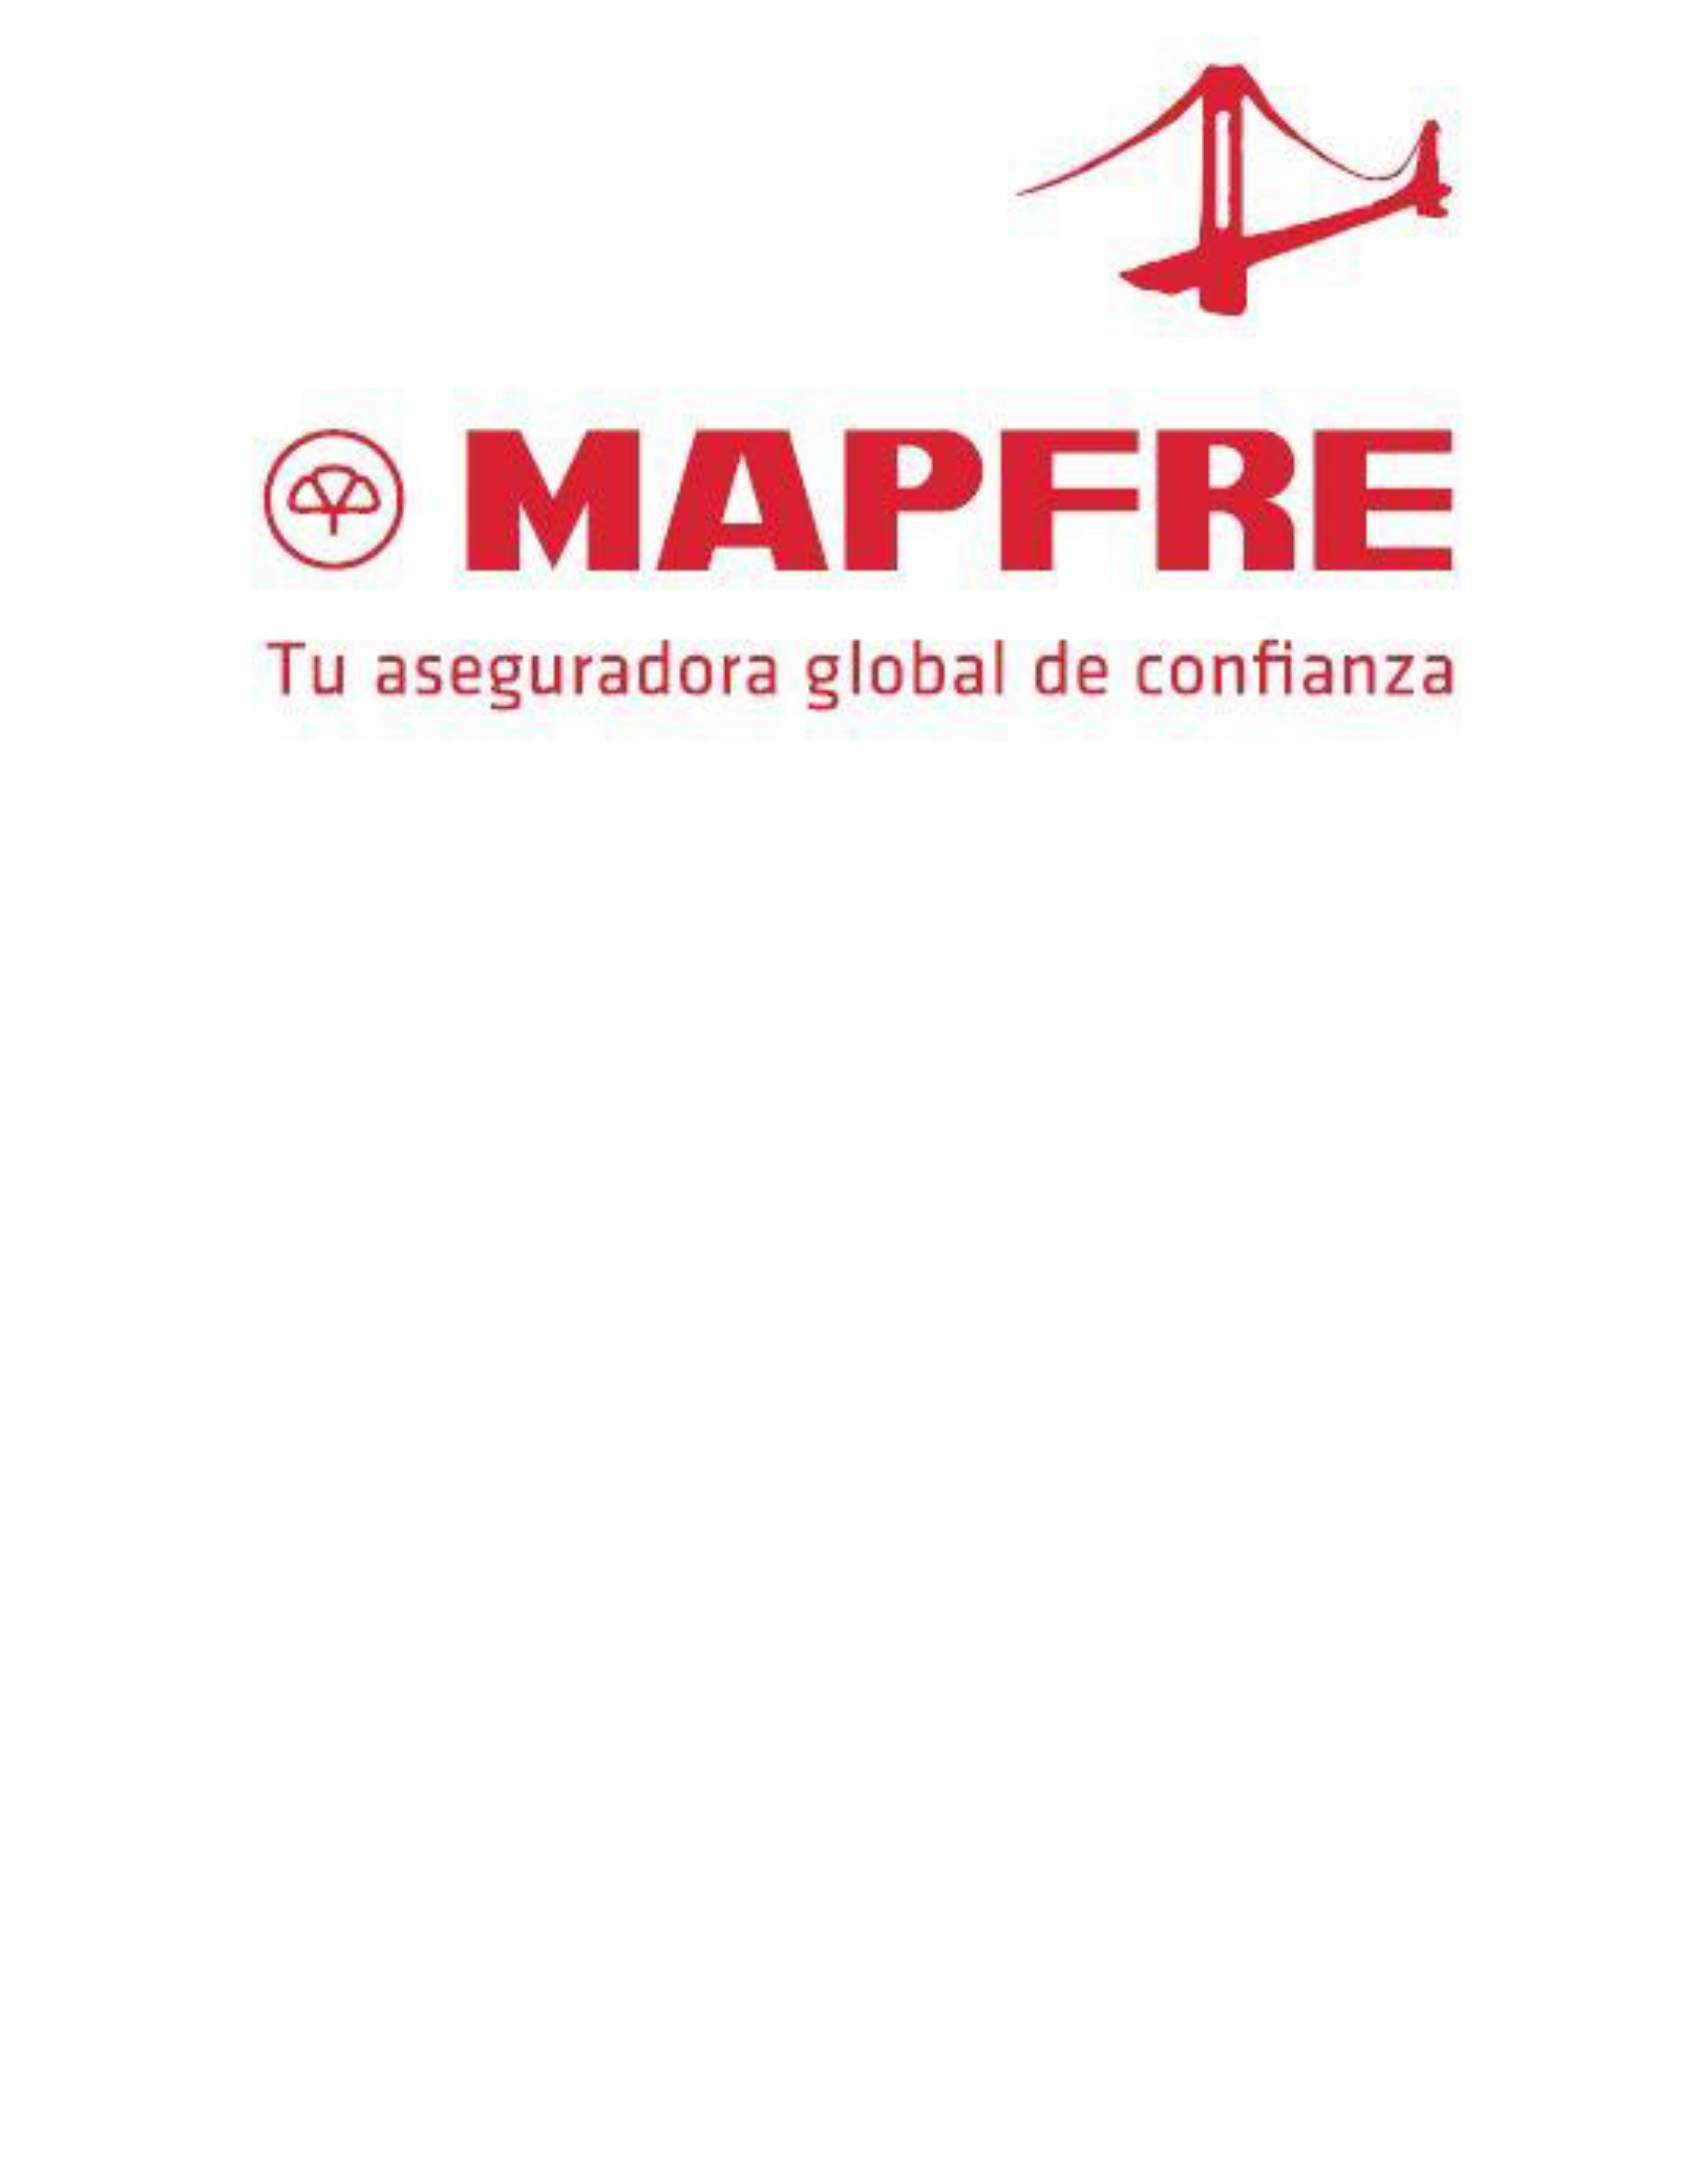 oferta mapfre pag 7